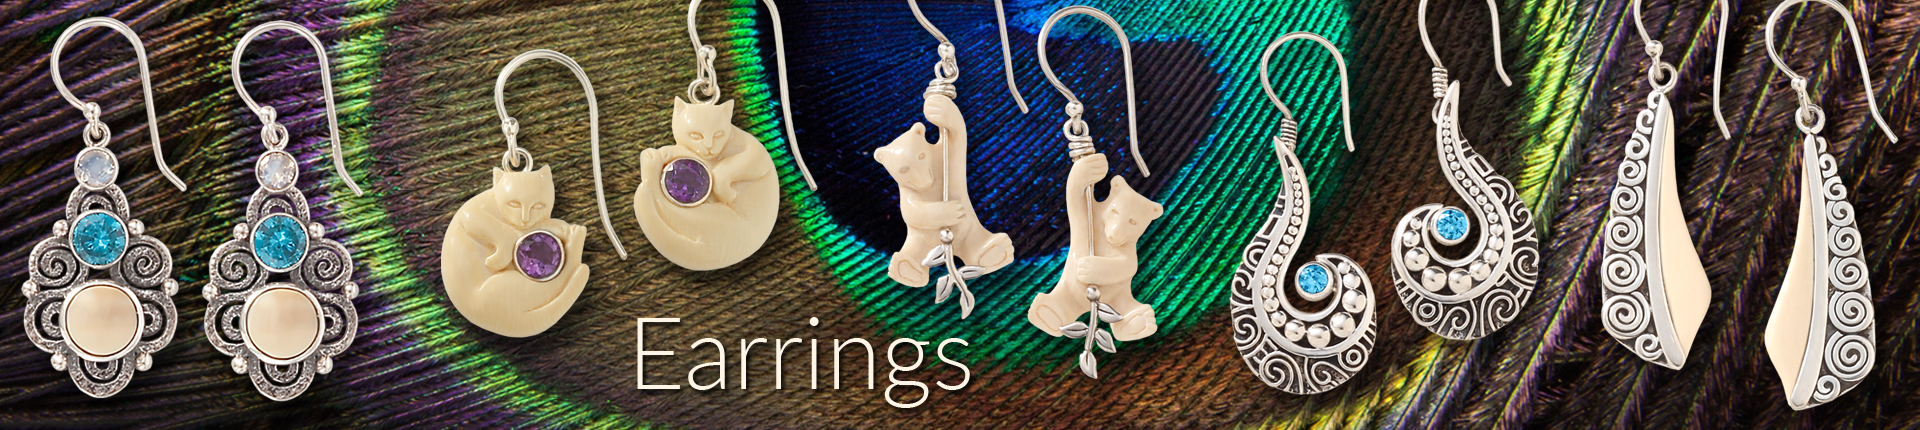 Zealandia fossilized ivory earrings